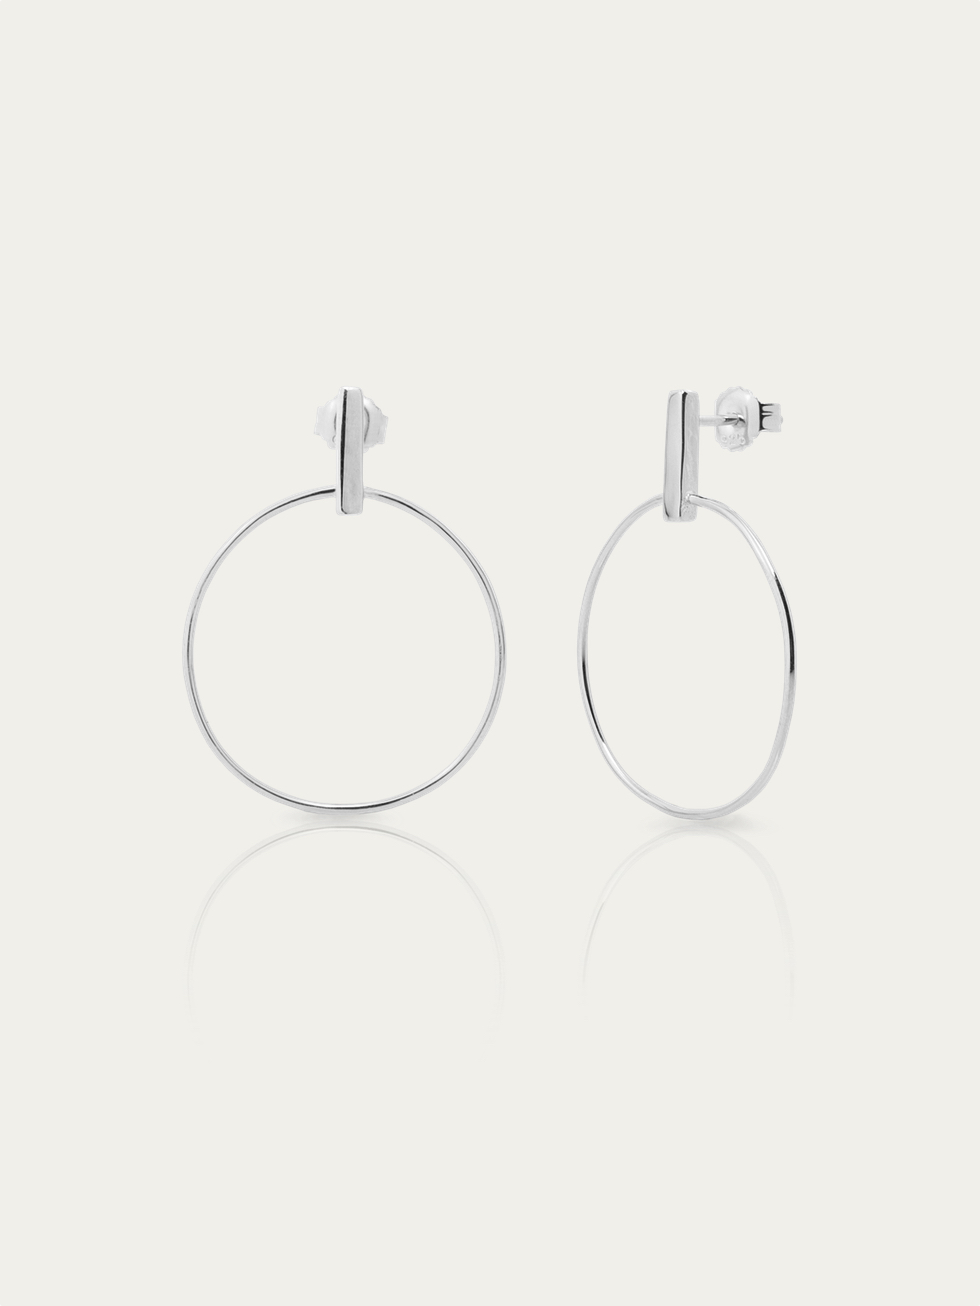 STICK CIRCLE silver earrings